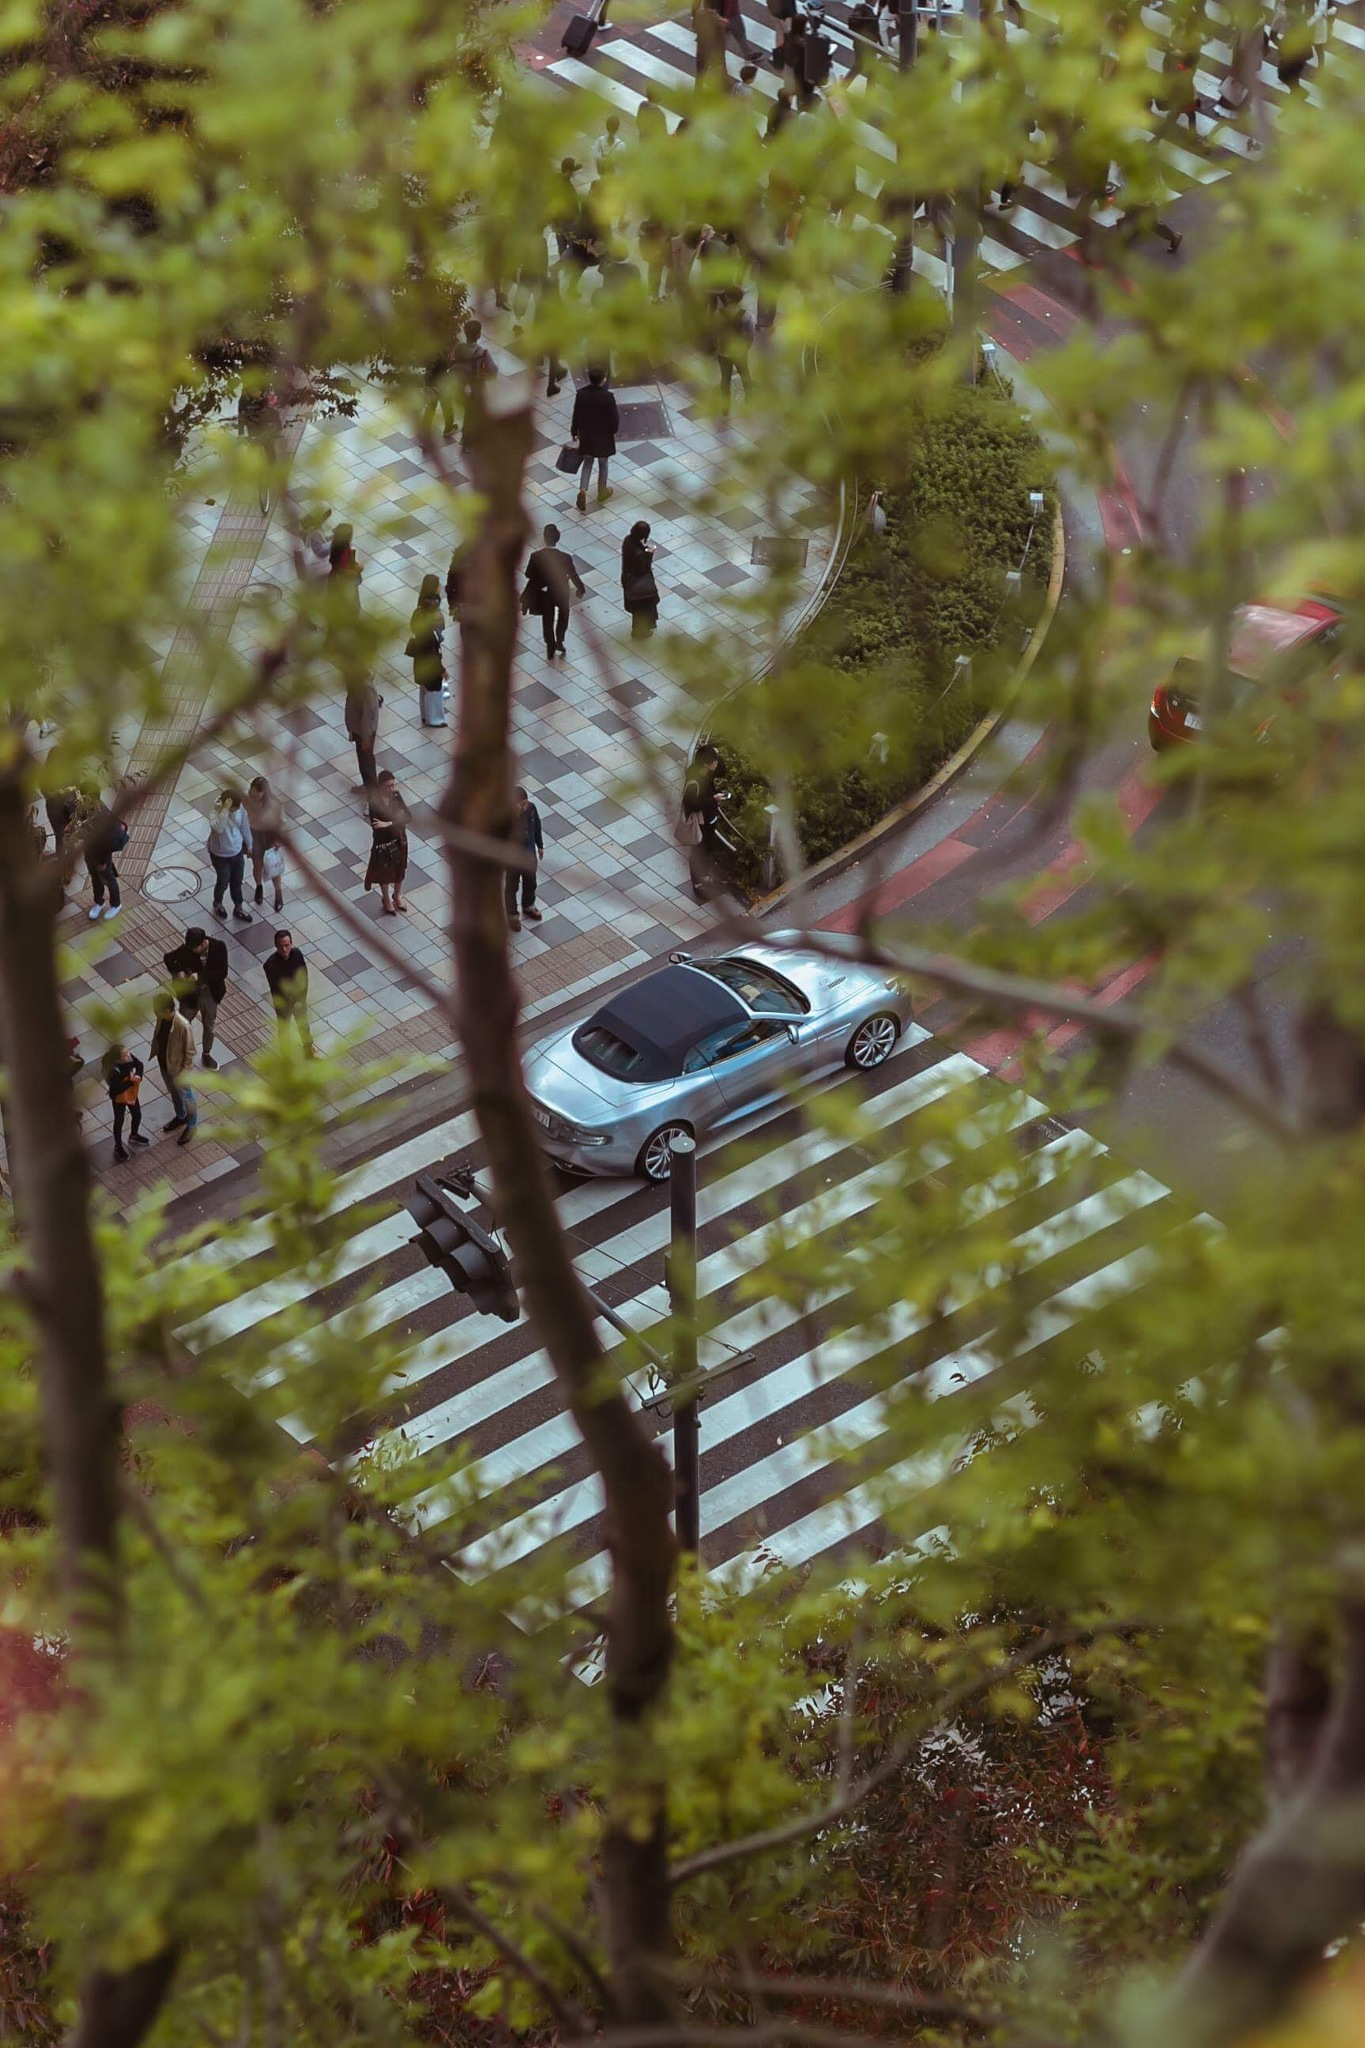 Aston Martin in the streets of Tokyo by Rabin Nuchtabek